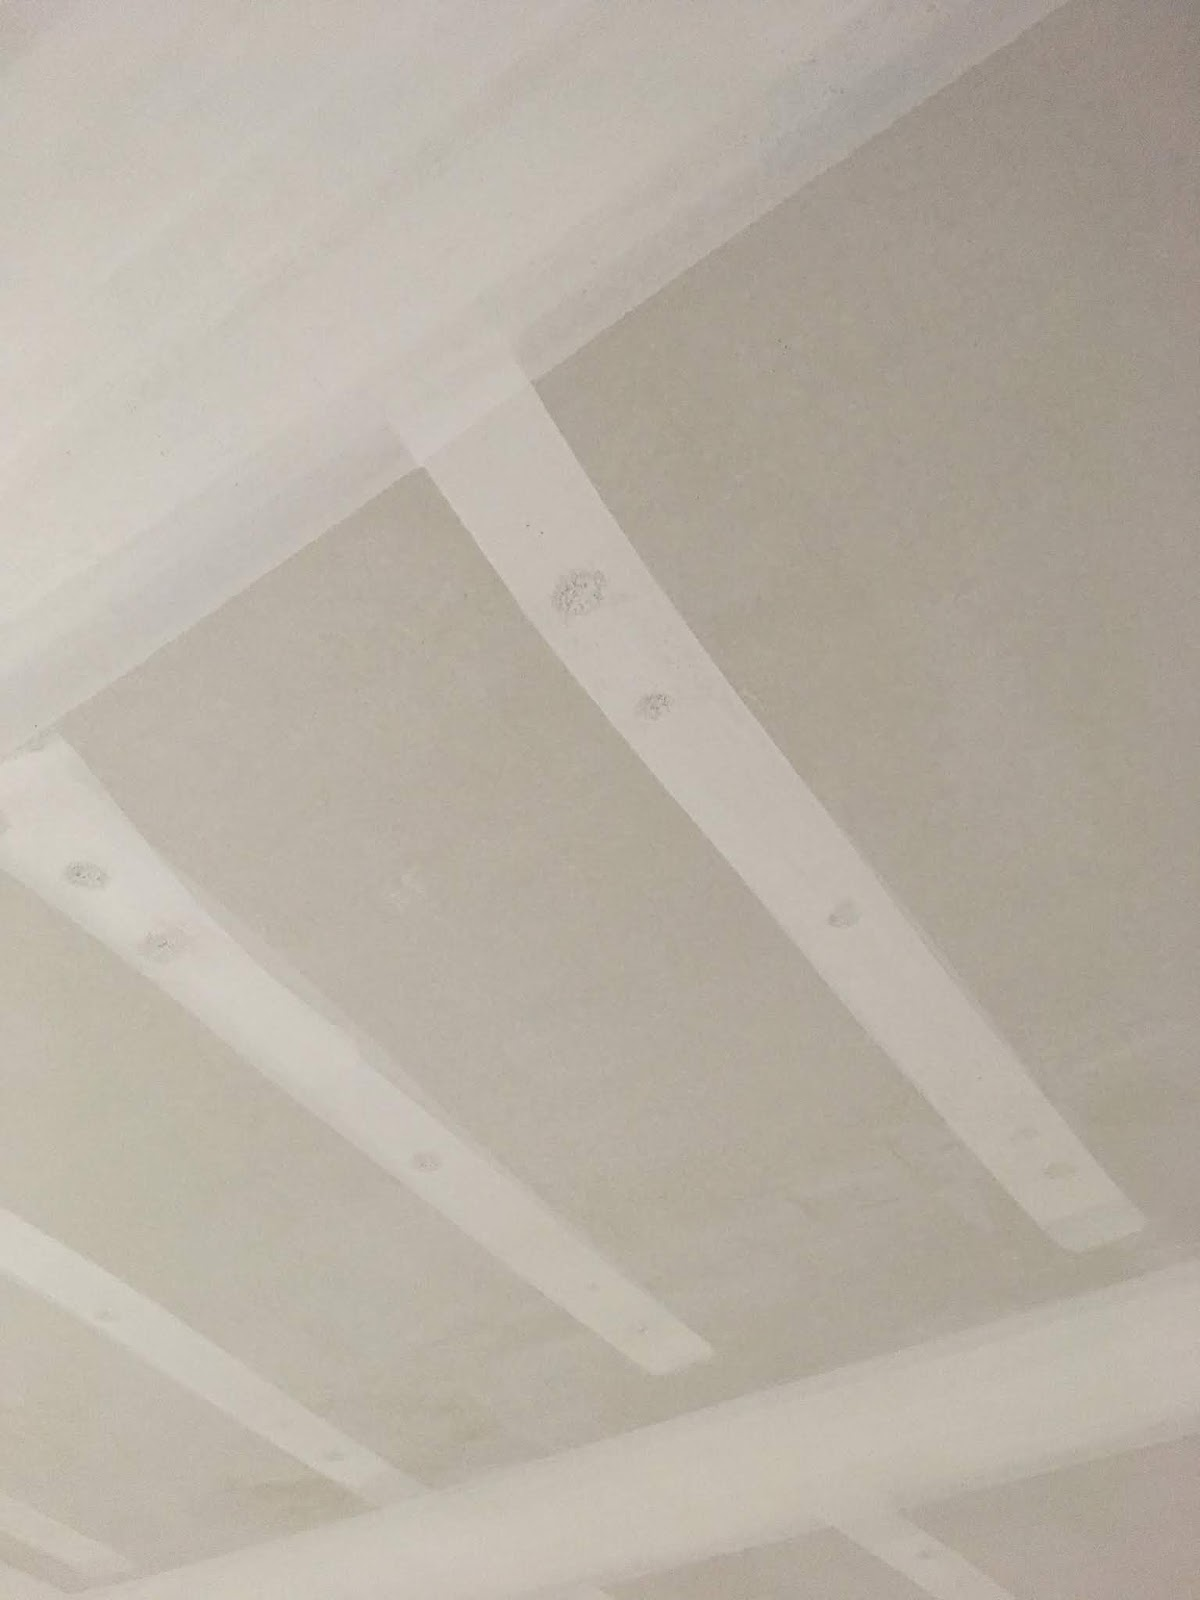 Finishing Ceilings After Popcorn Removal Bean In Love